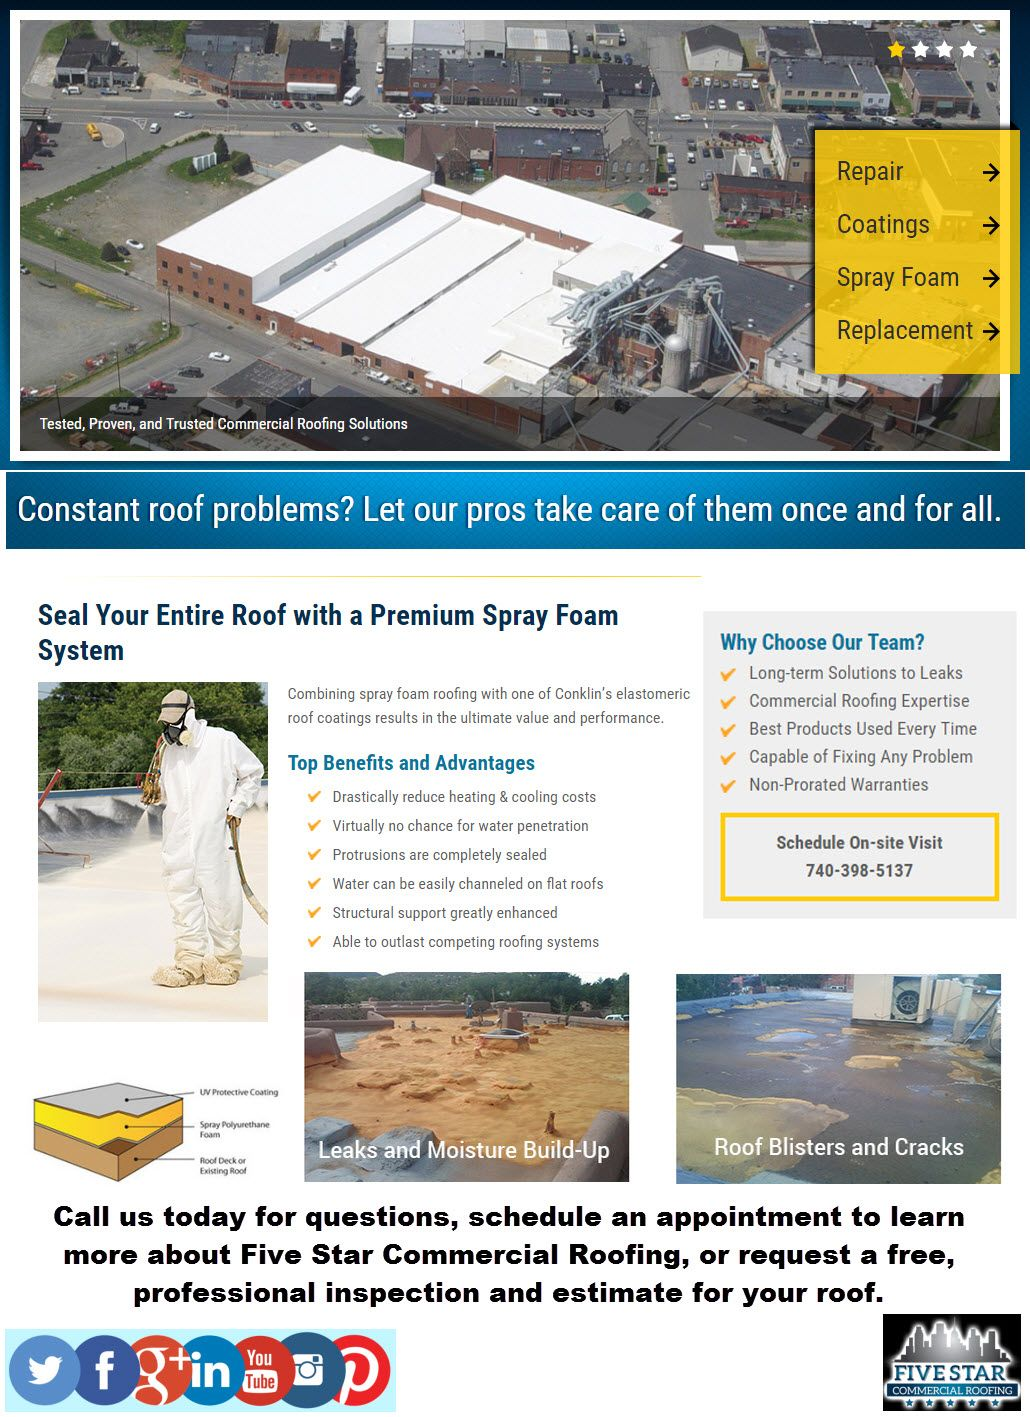 Pin By Mejonsnow On Commercial Roofing Services Roof Problems Commercial Roofing Roofing Services